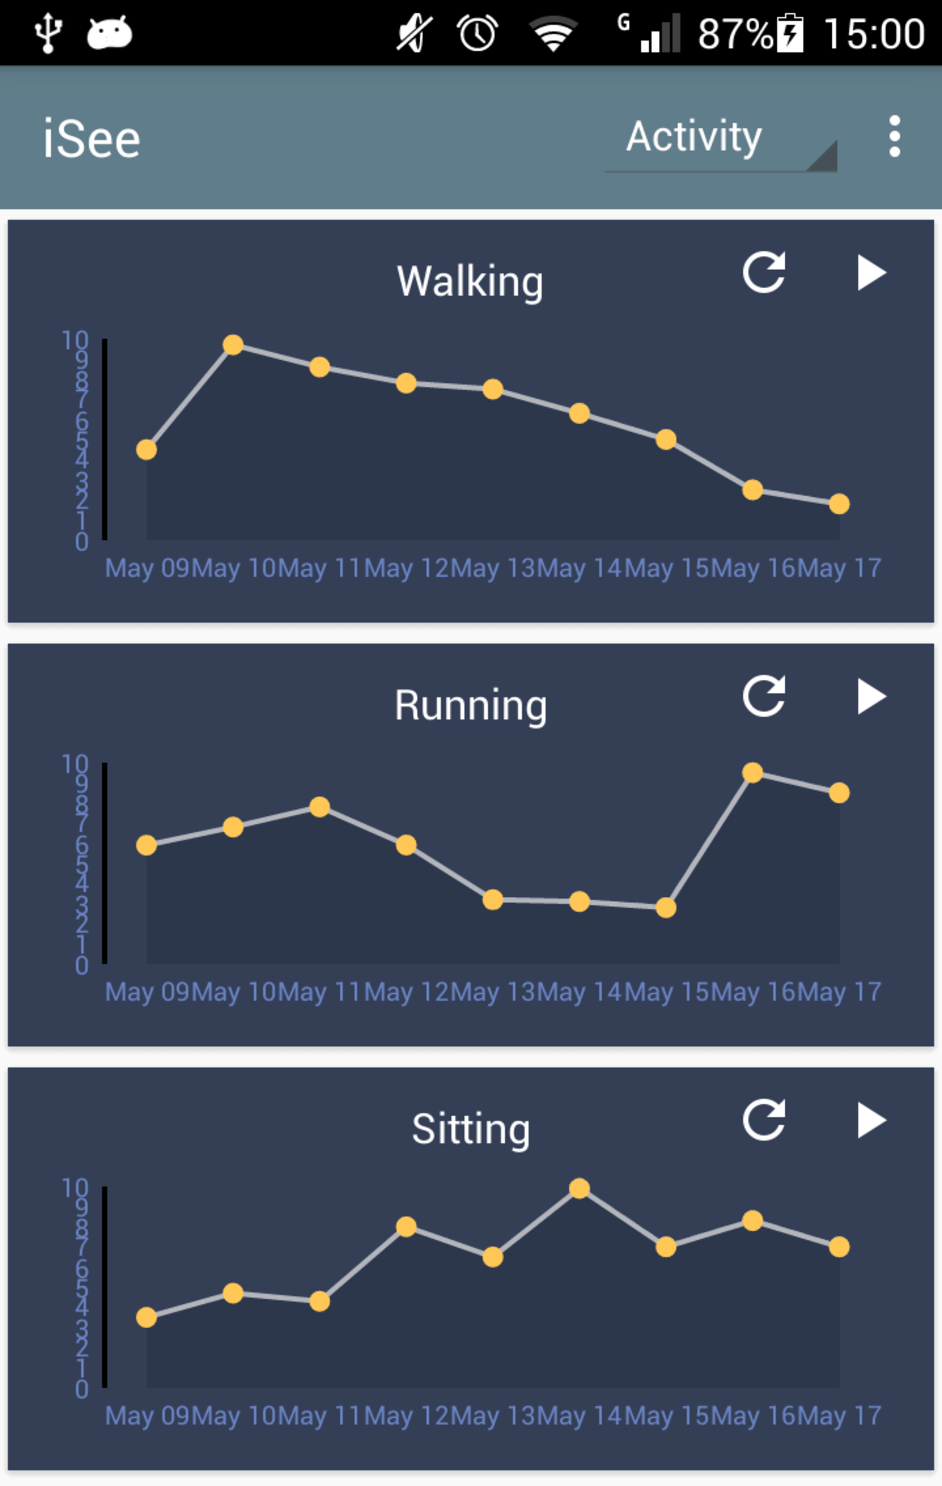 The iSee app's main screen shows activity trends.